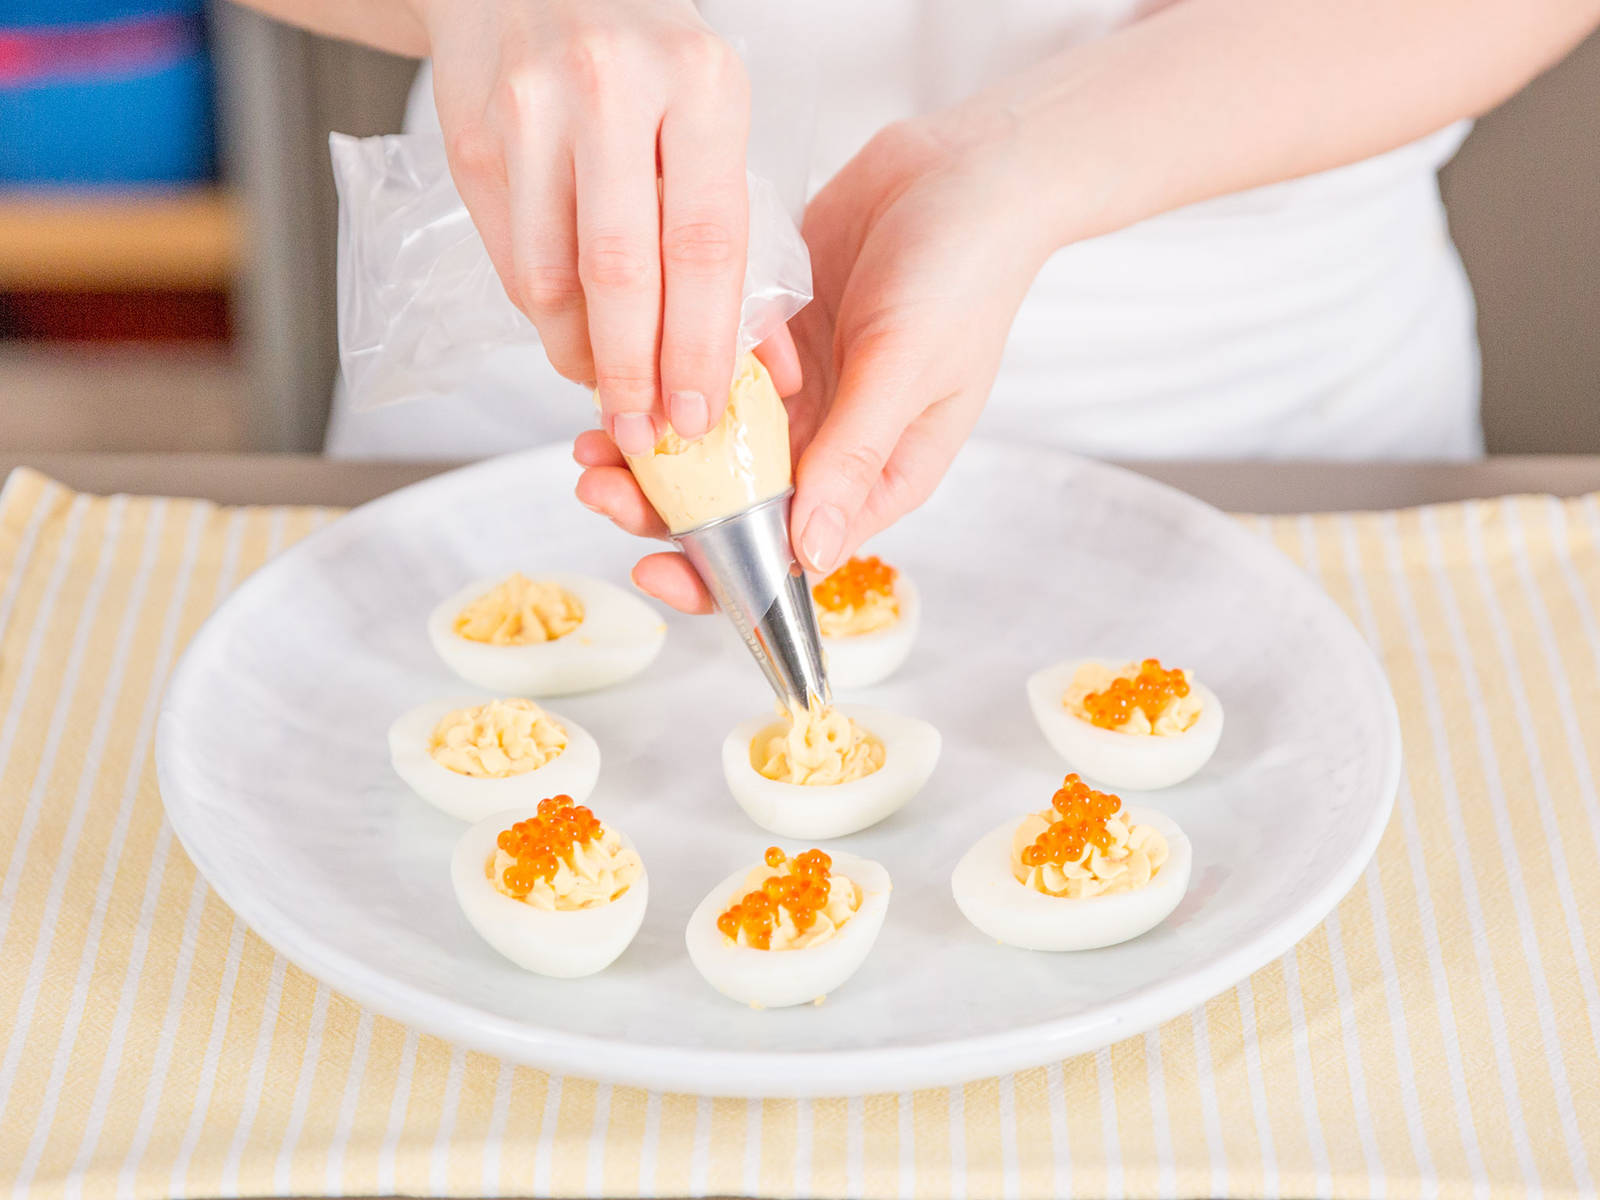 Transfer egg mixture to a piping bag and pipe into the halved egg whites. Top each egg with trout caviar and garnish with garden cress. Enjoy!